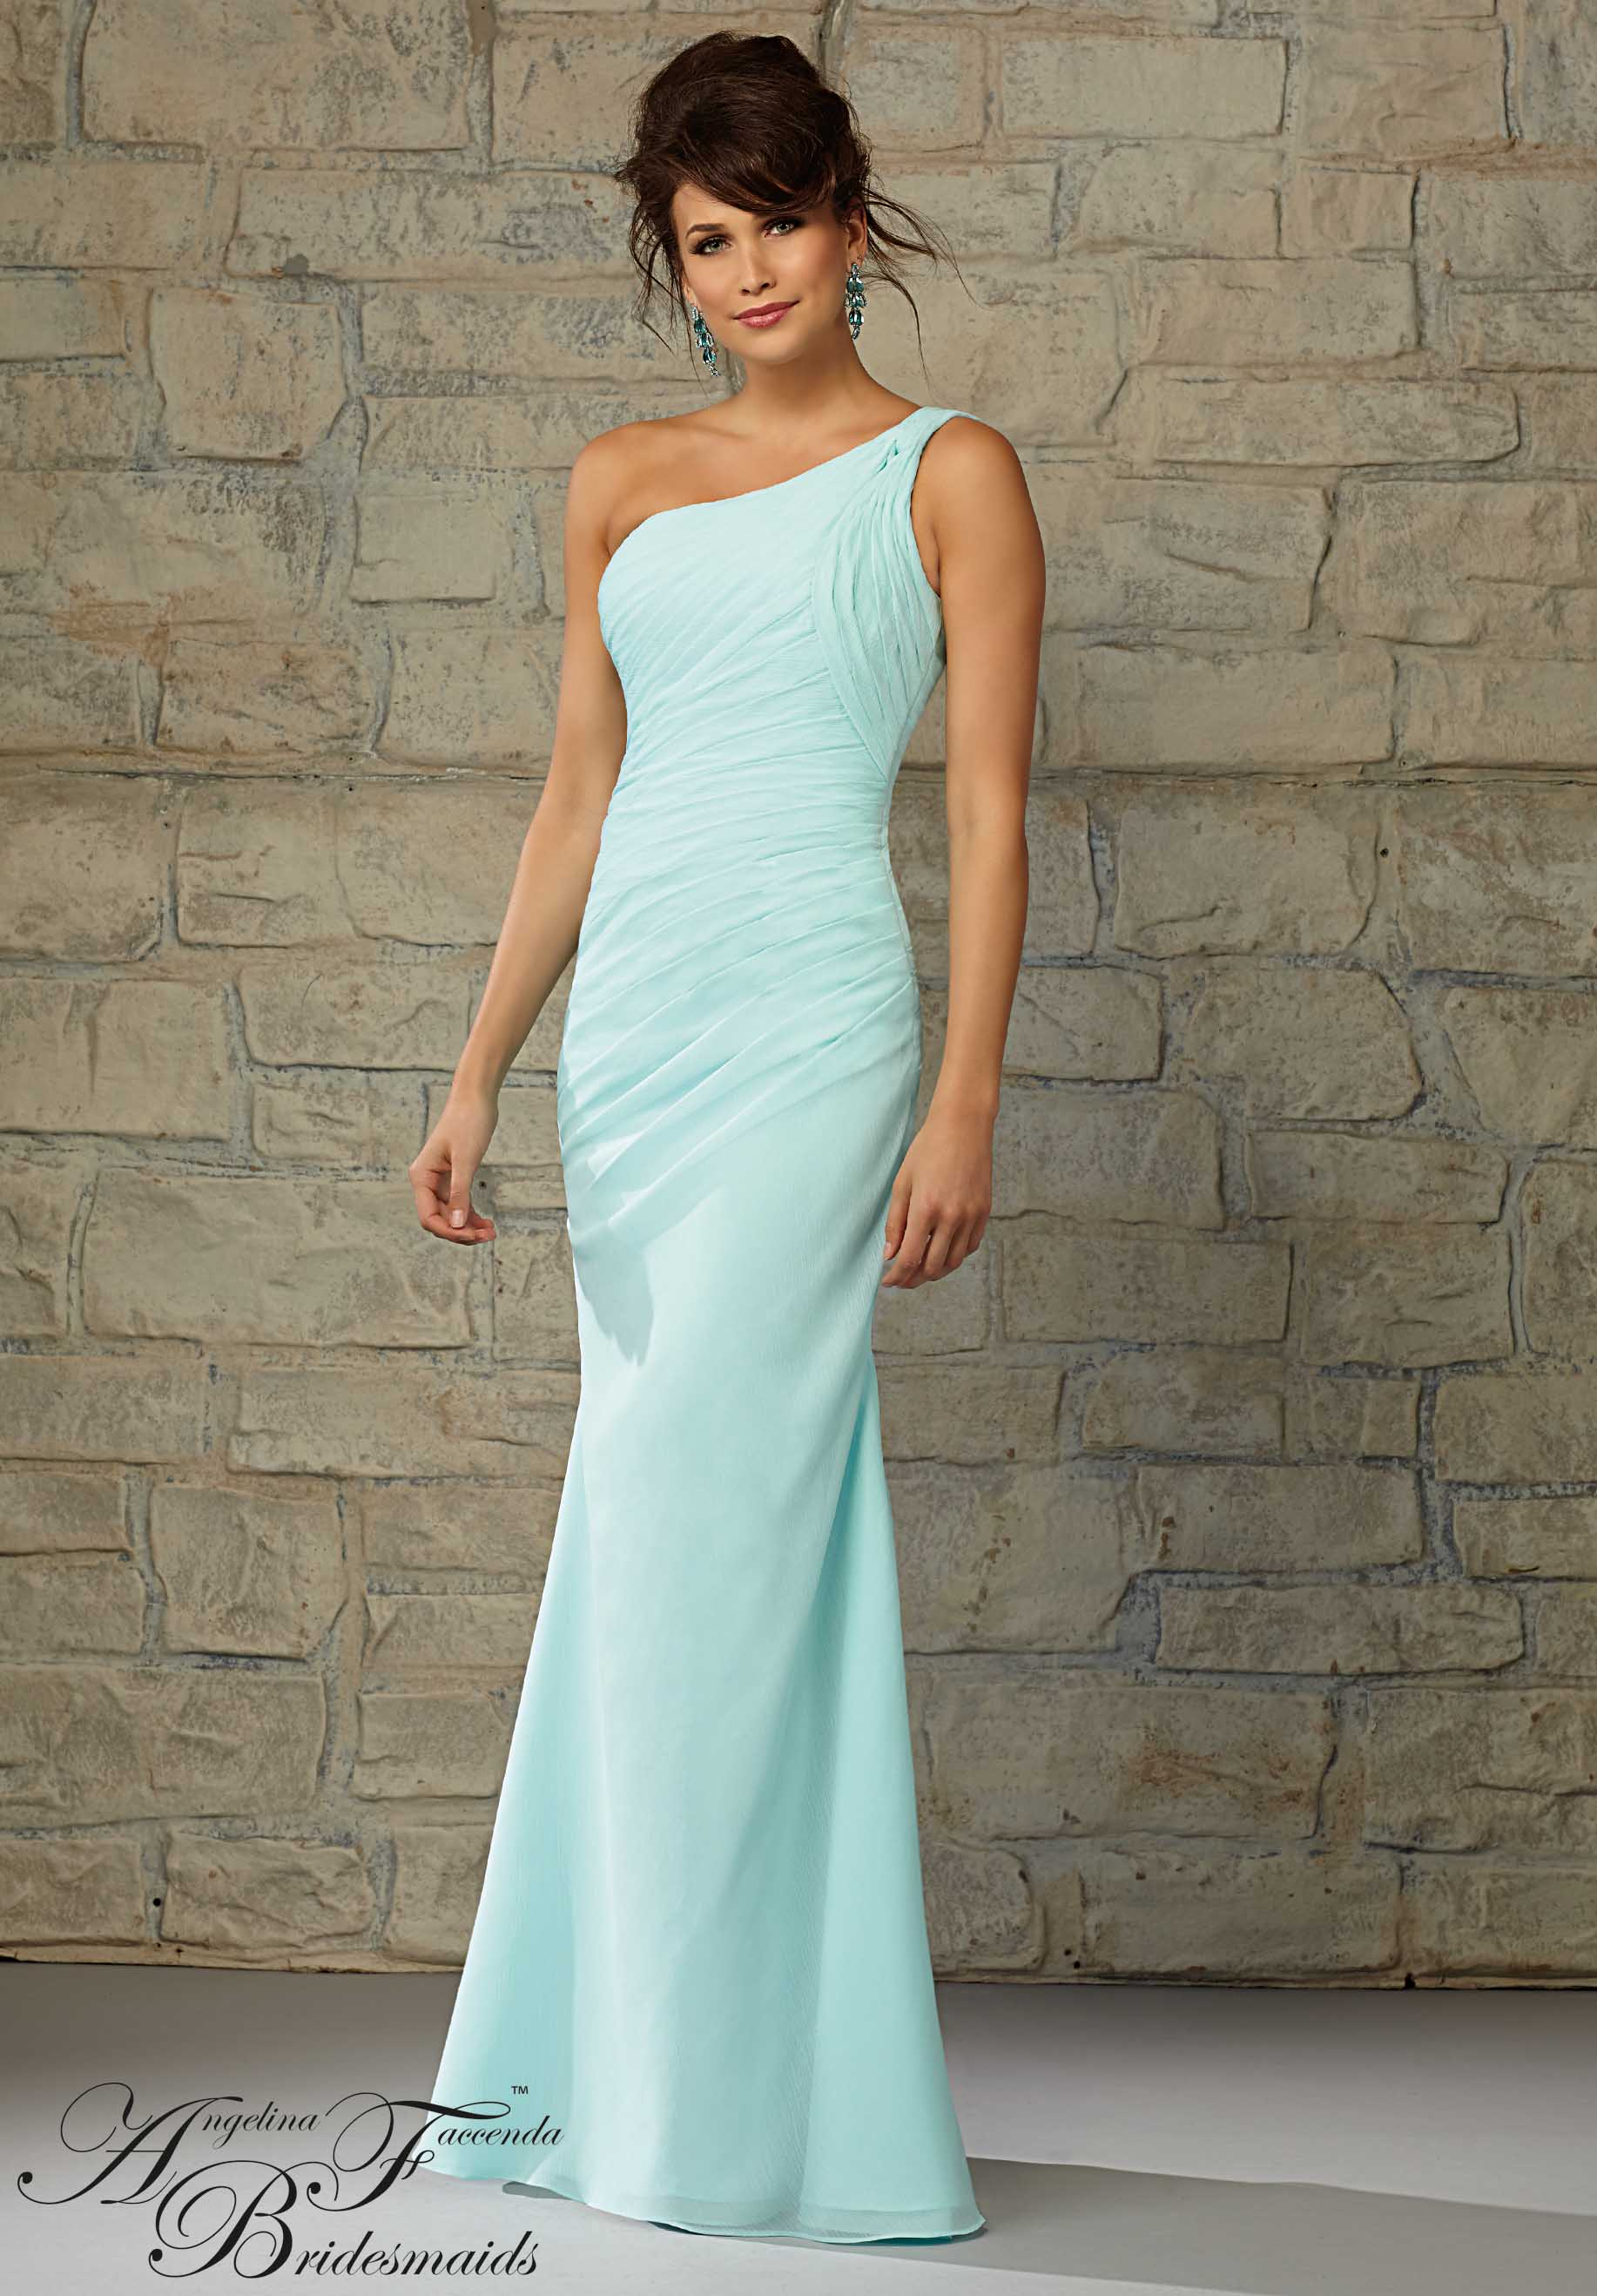 35 Figure Friendly One Shoulder Bridesmaid Dresses   EverAfterGuide Luxe Chiffon One Shoulder Gown